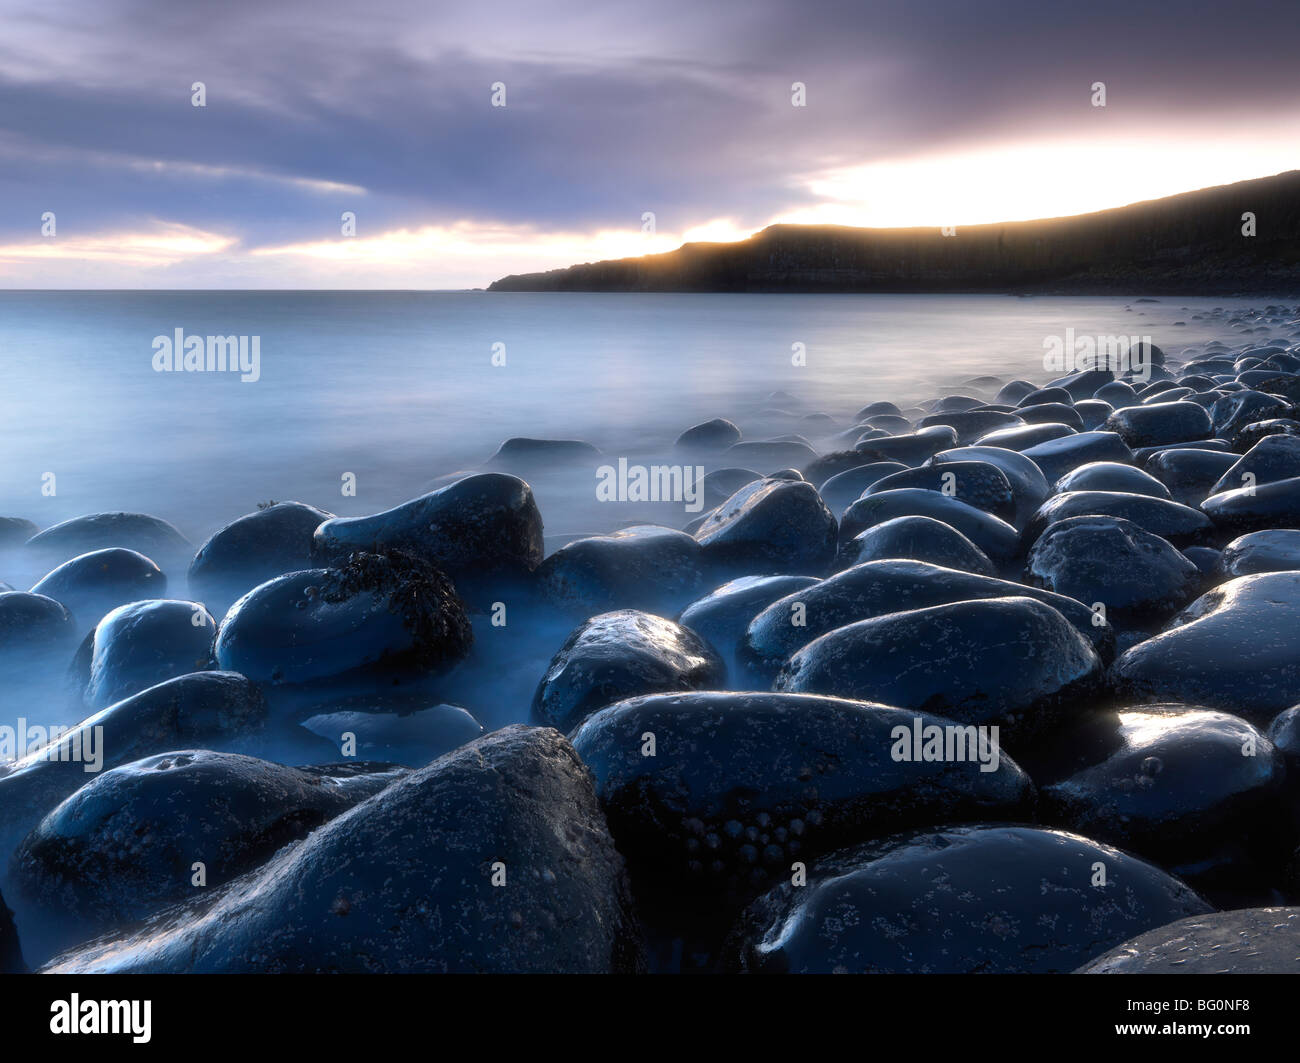 Embleton Bay at dawn from beach of basalt boulders known as The Rumble Churn, Northumberland, England, United Kingdom Stock Photo